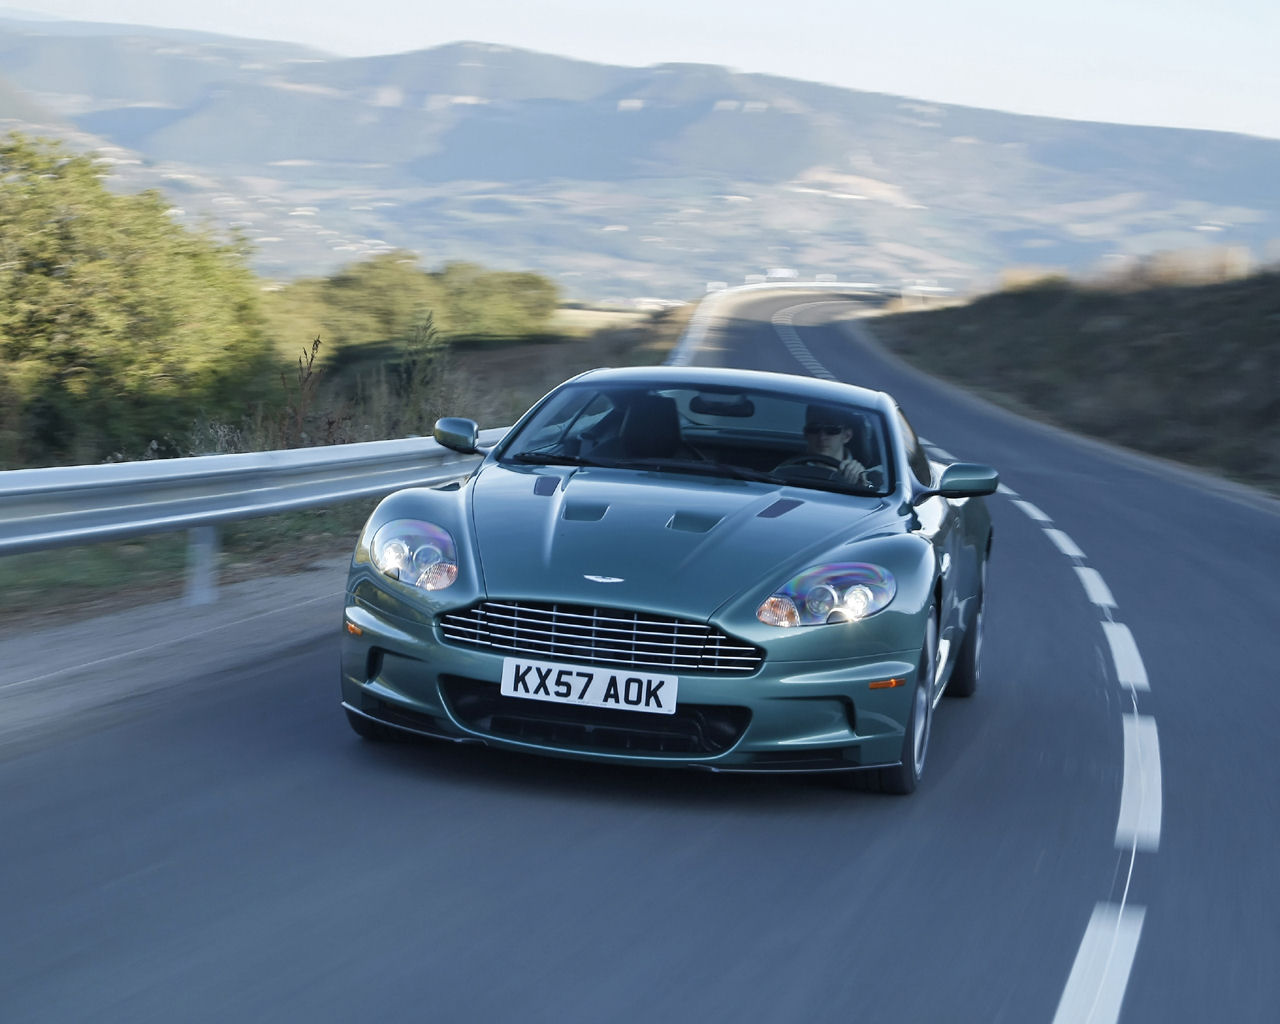 aston martin dbs v12 wallpaper - photo #14